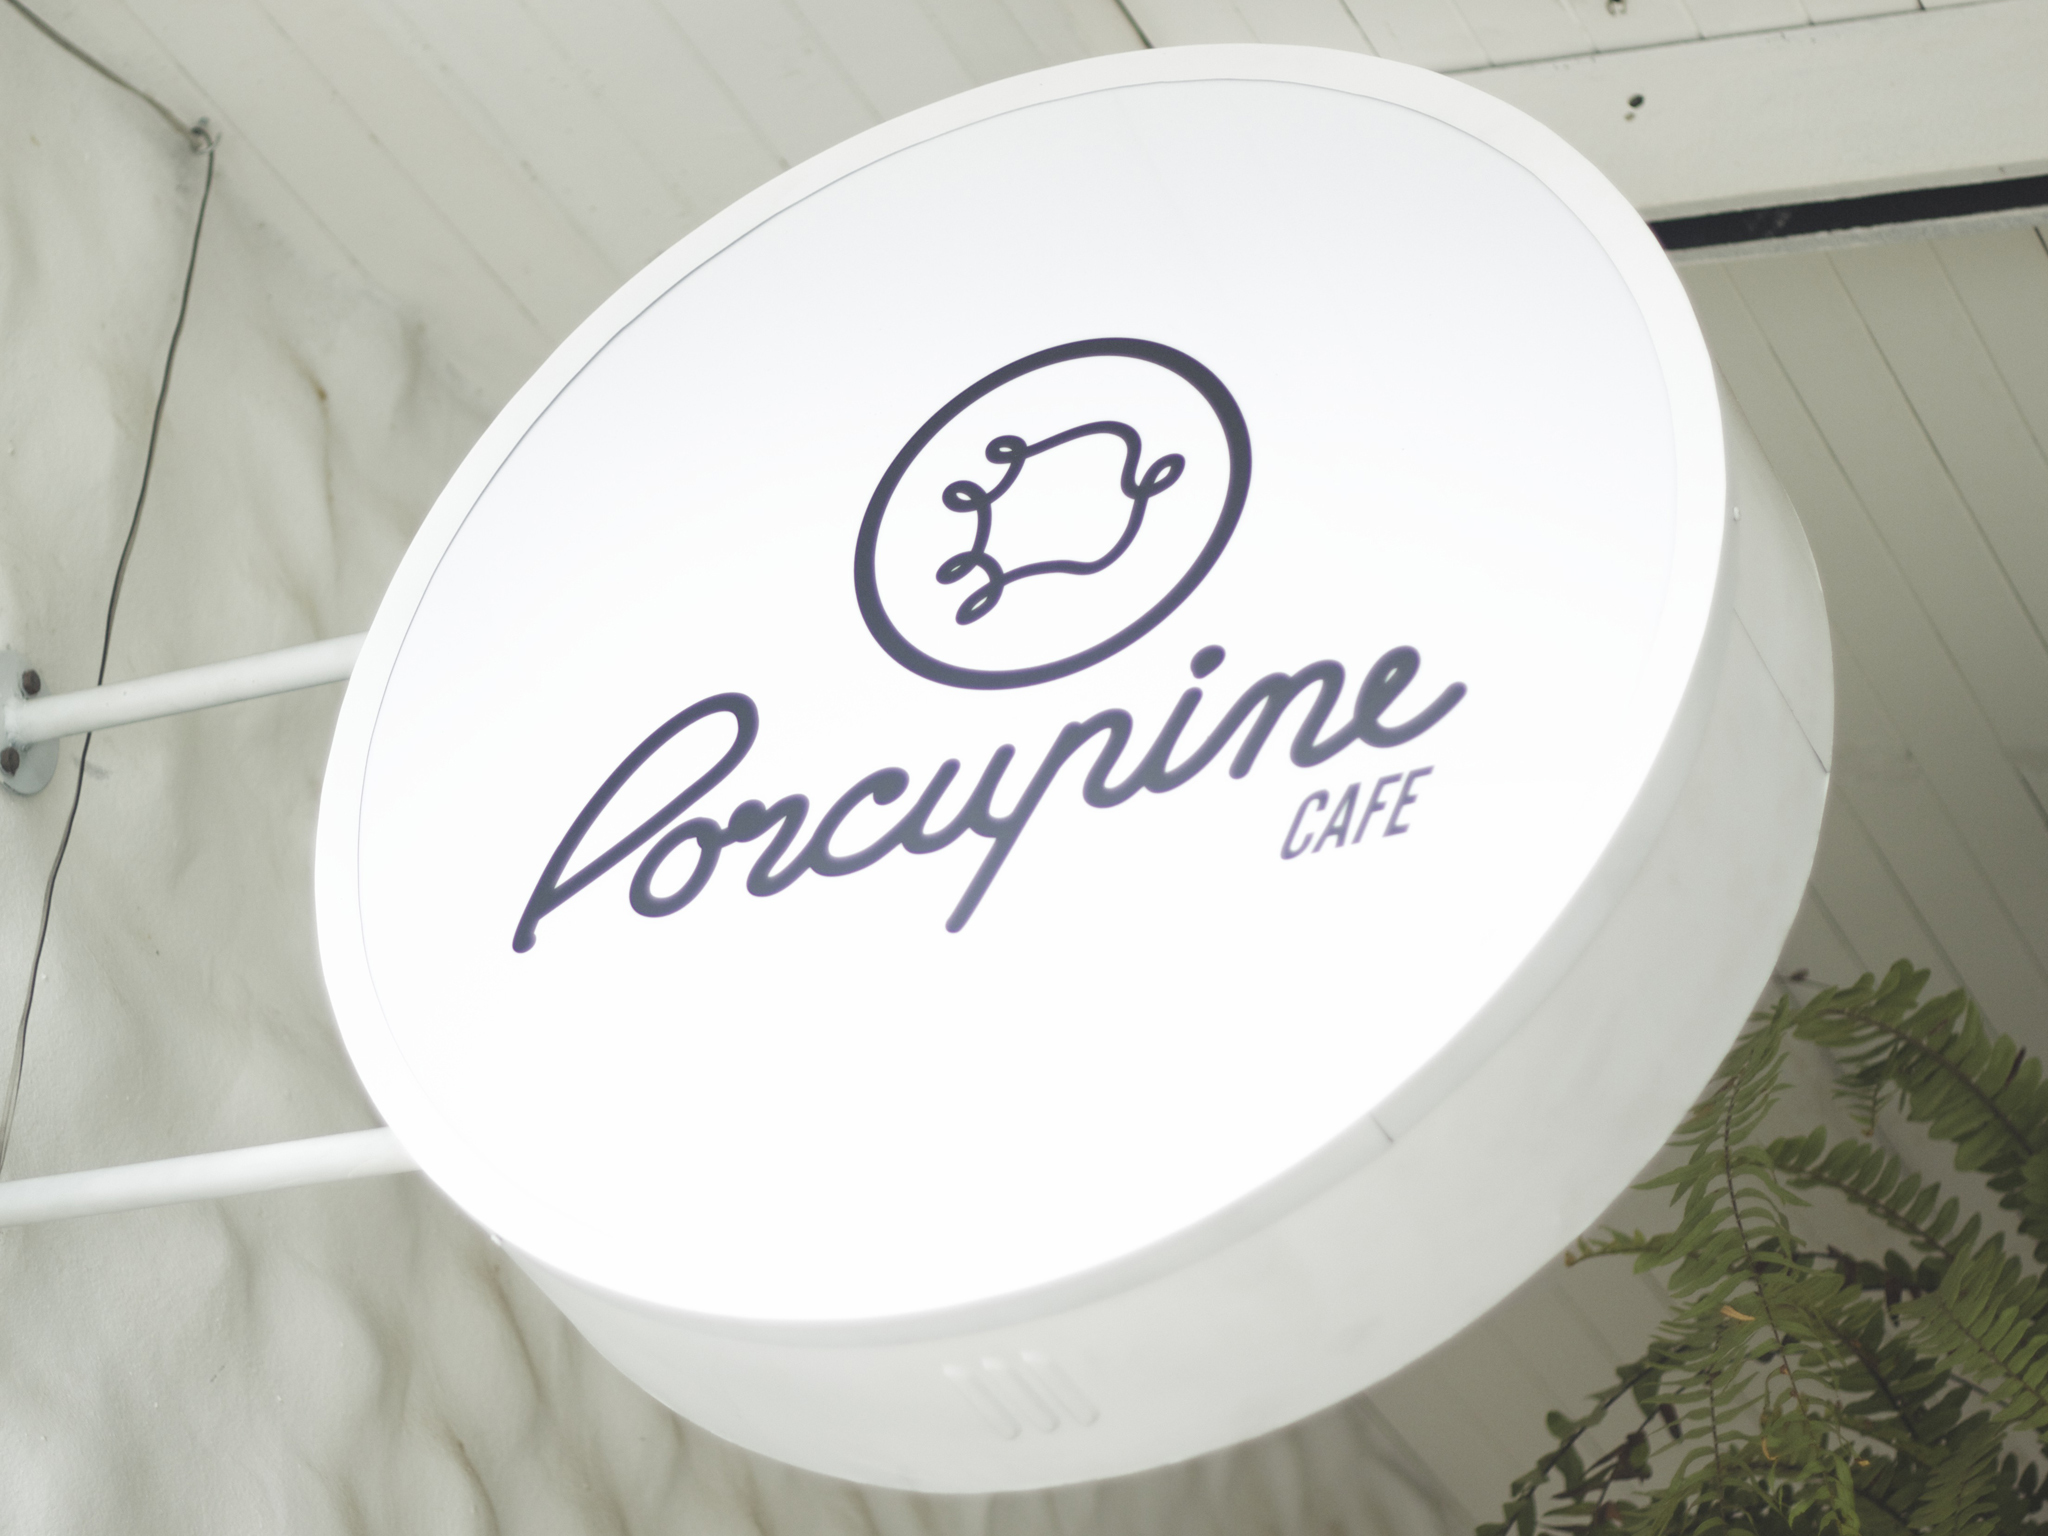 Porcupine Cafe great coffee and a wide range of tasty desserts